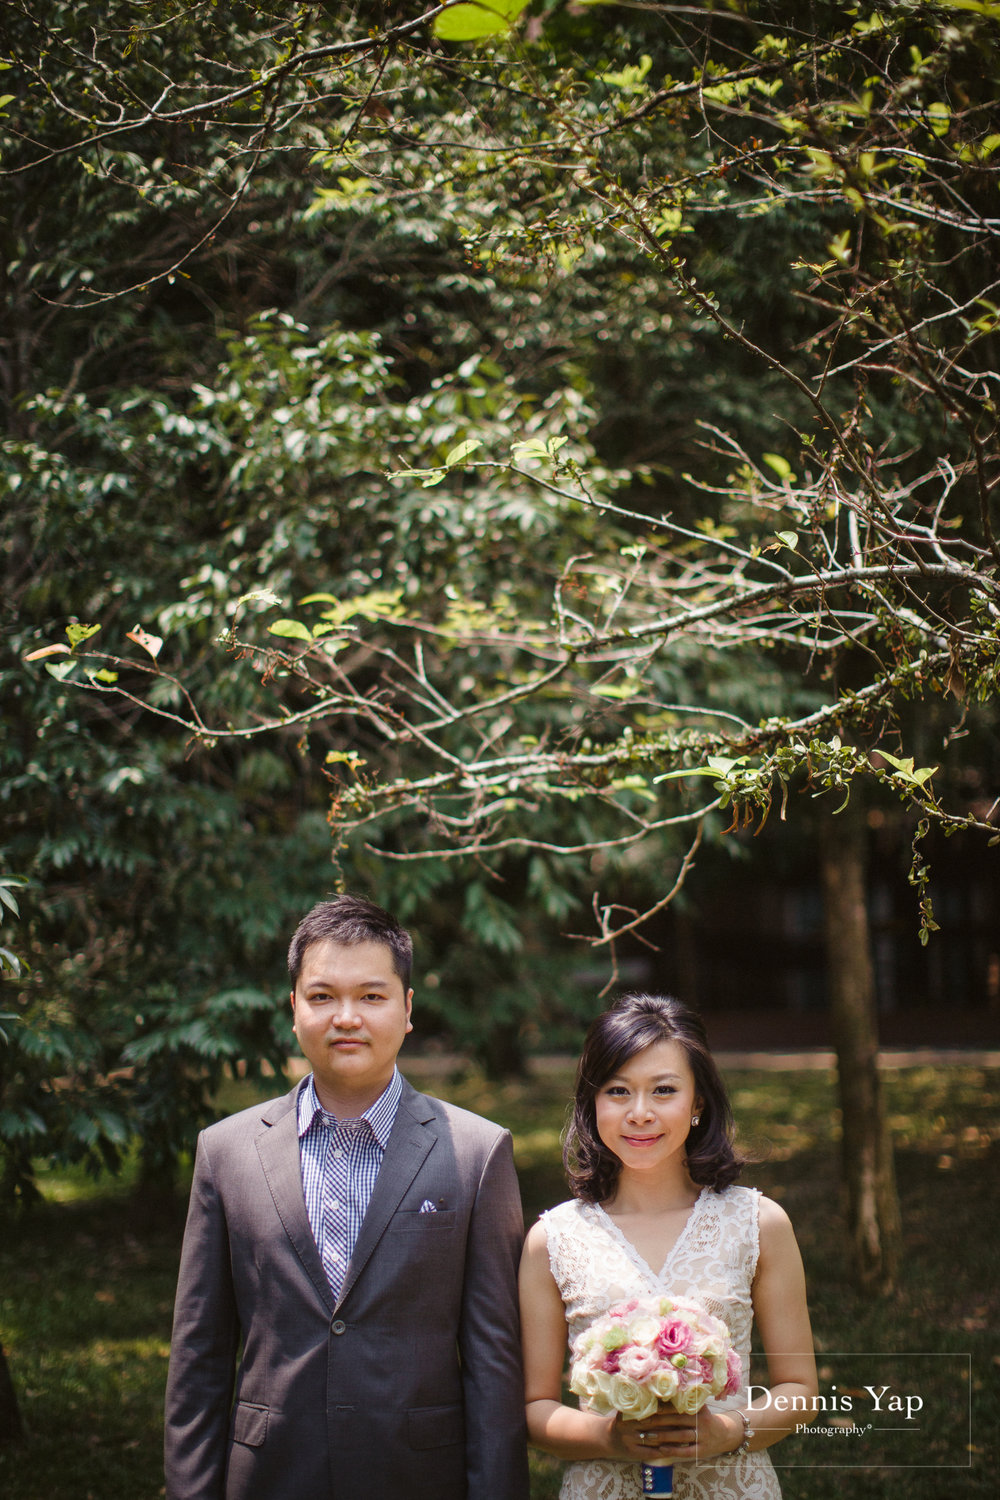 jacky kerry registration of marriage ROM dennis yap photography-6.jpg